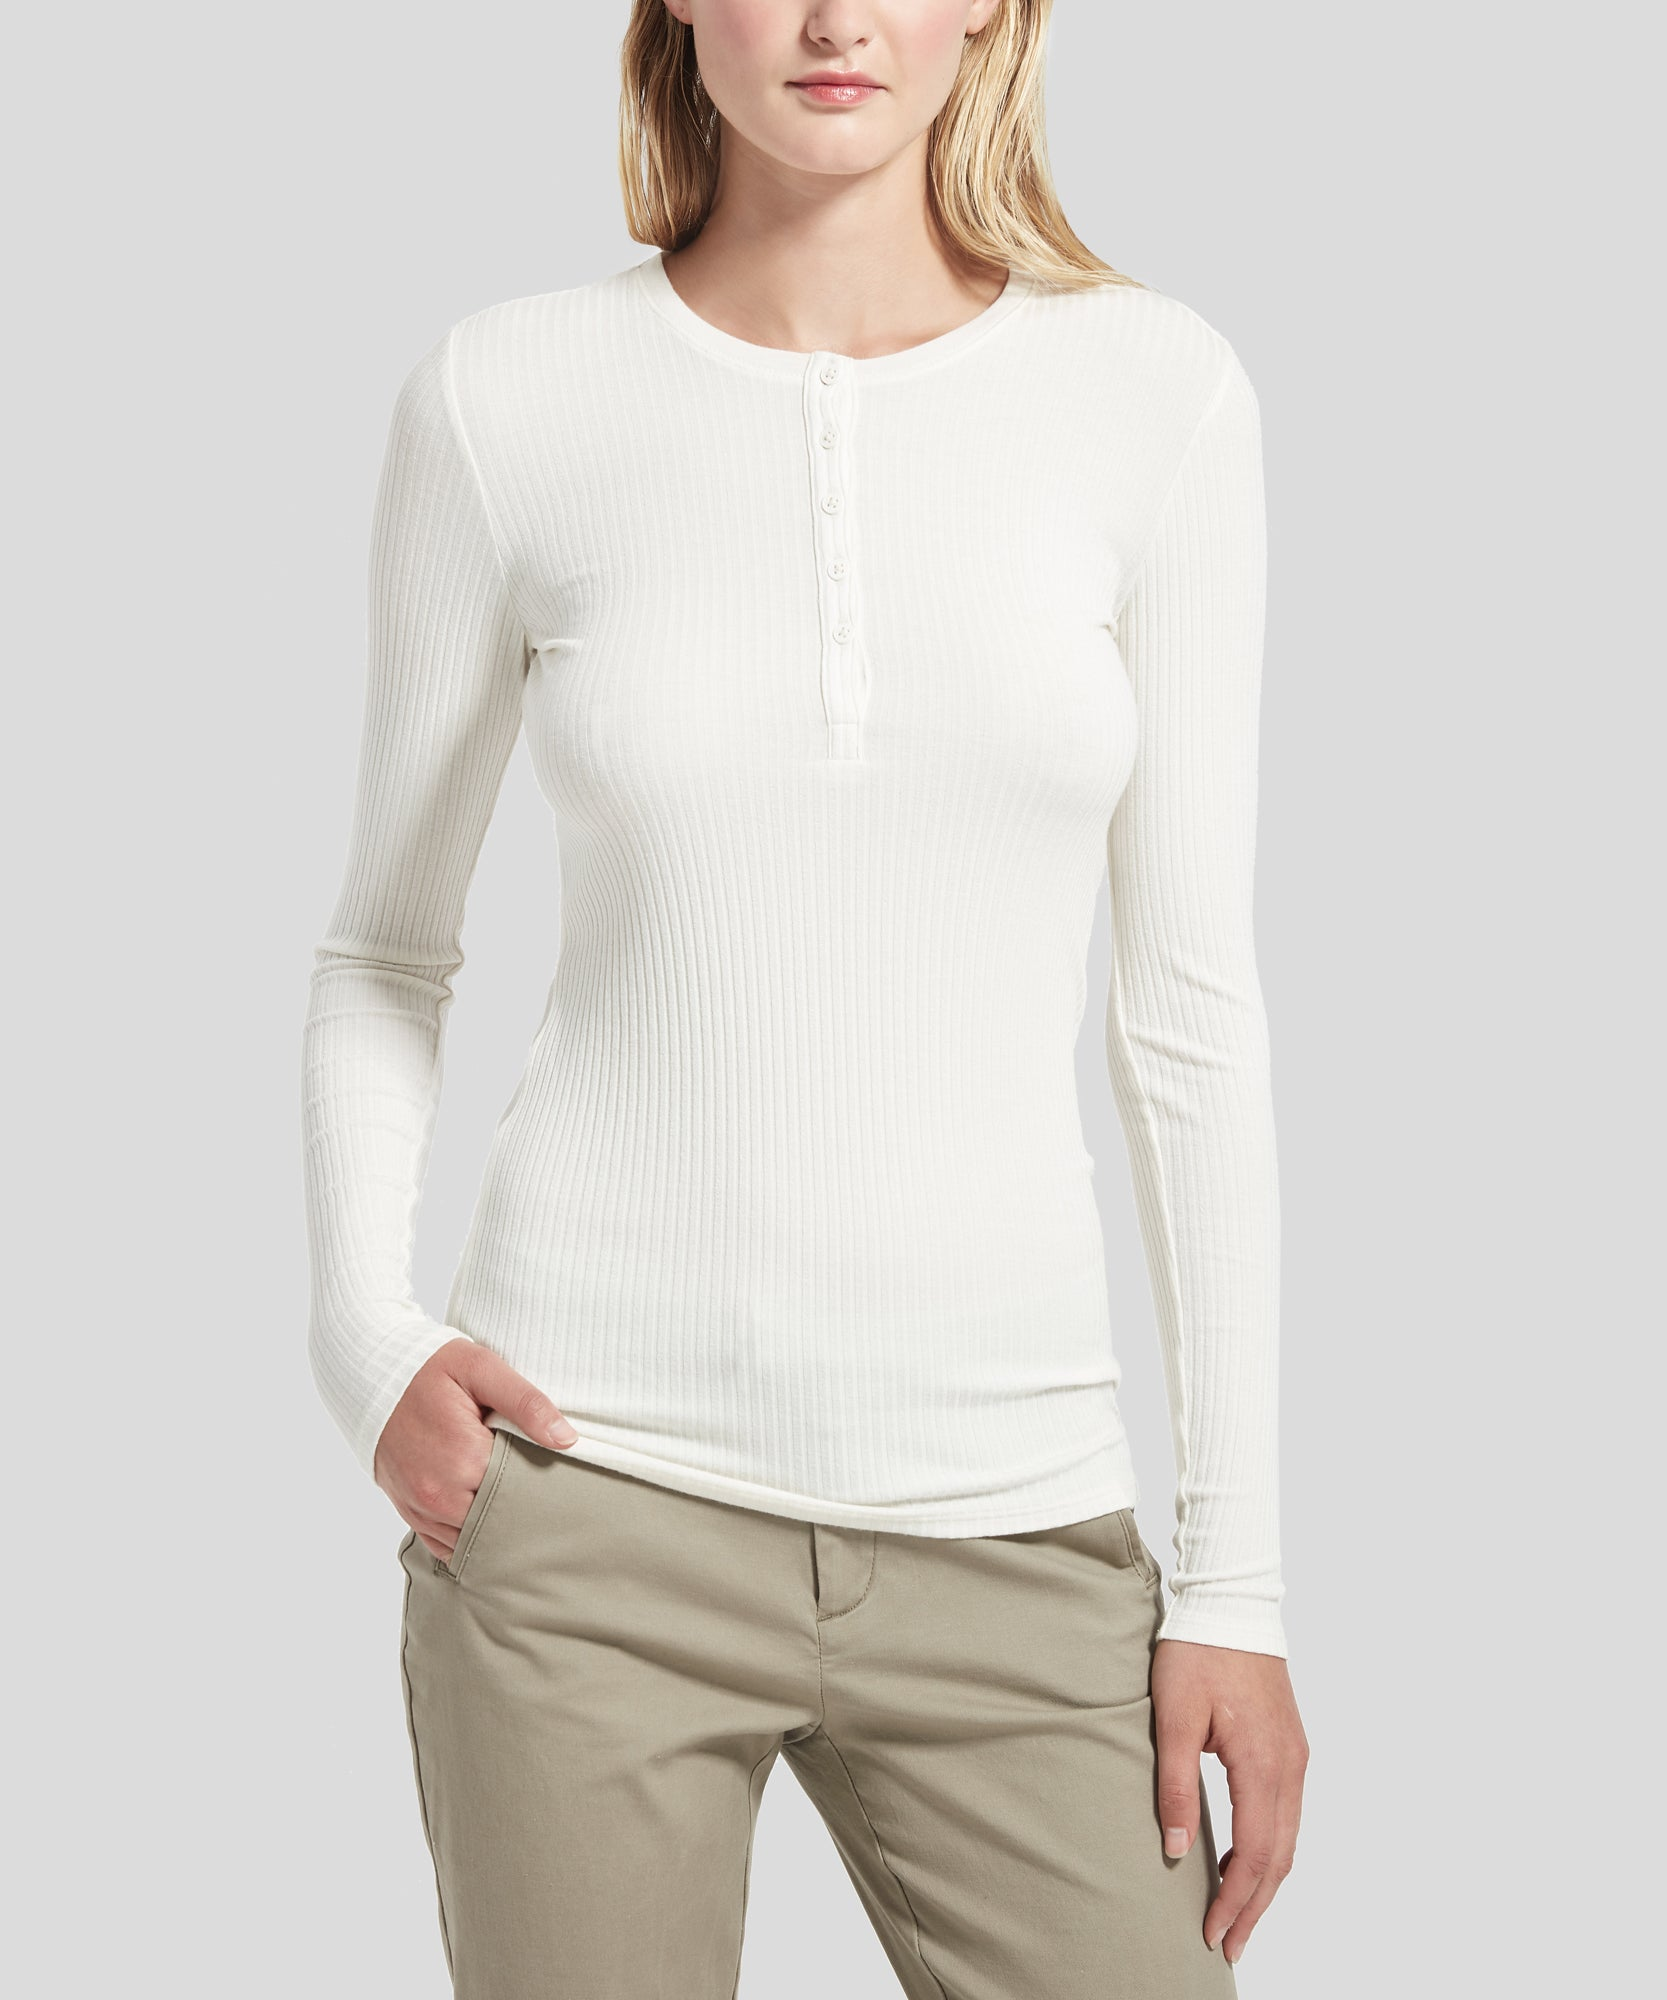 ATM Modal Wide Rib Long Sleeve Henley